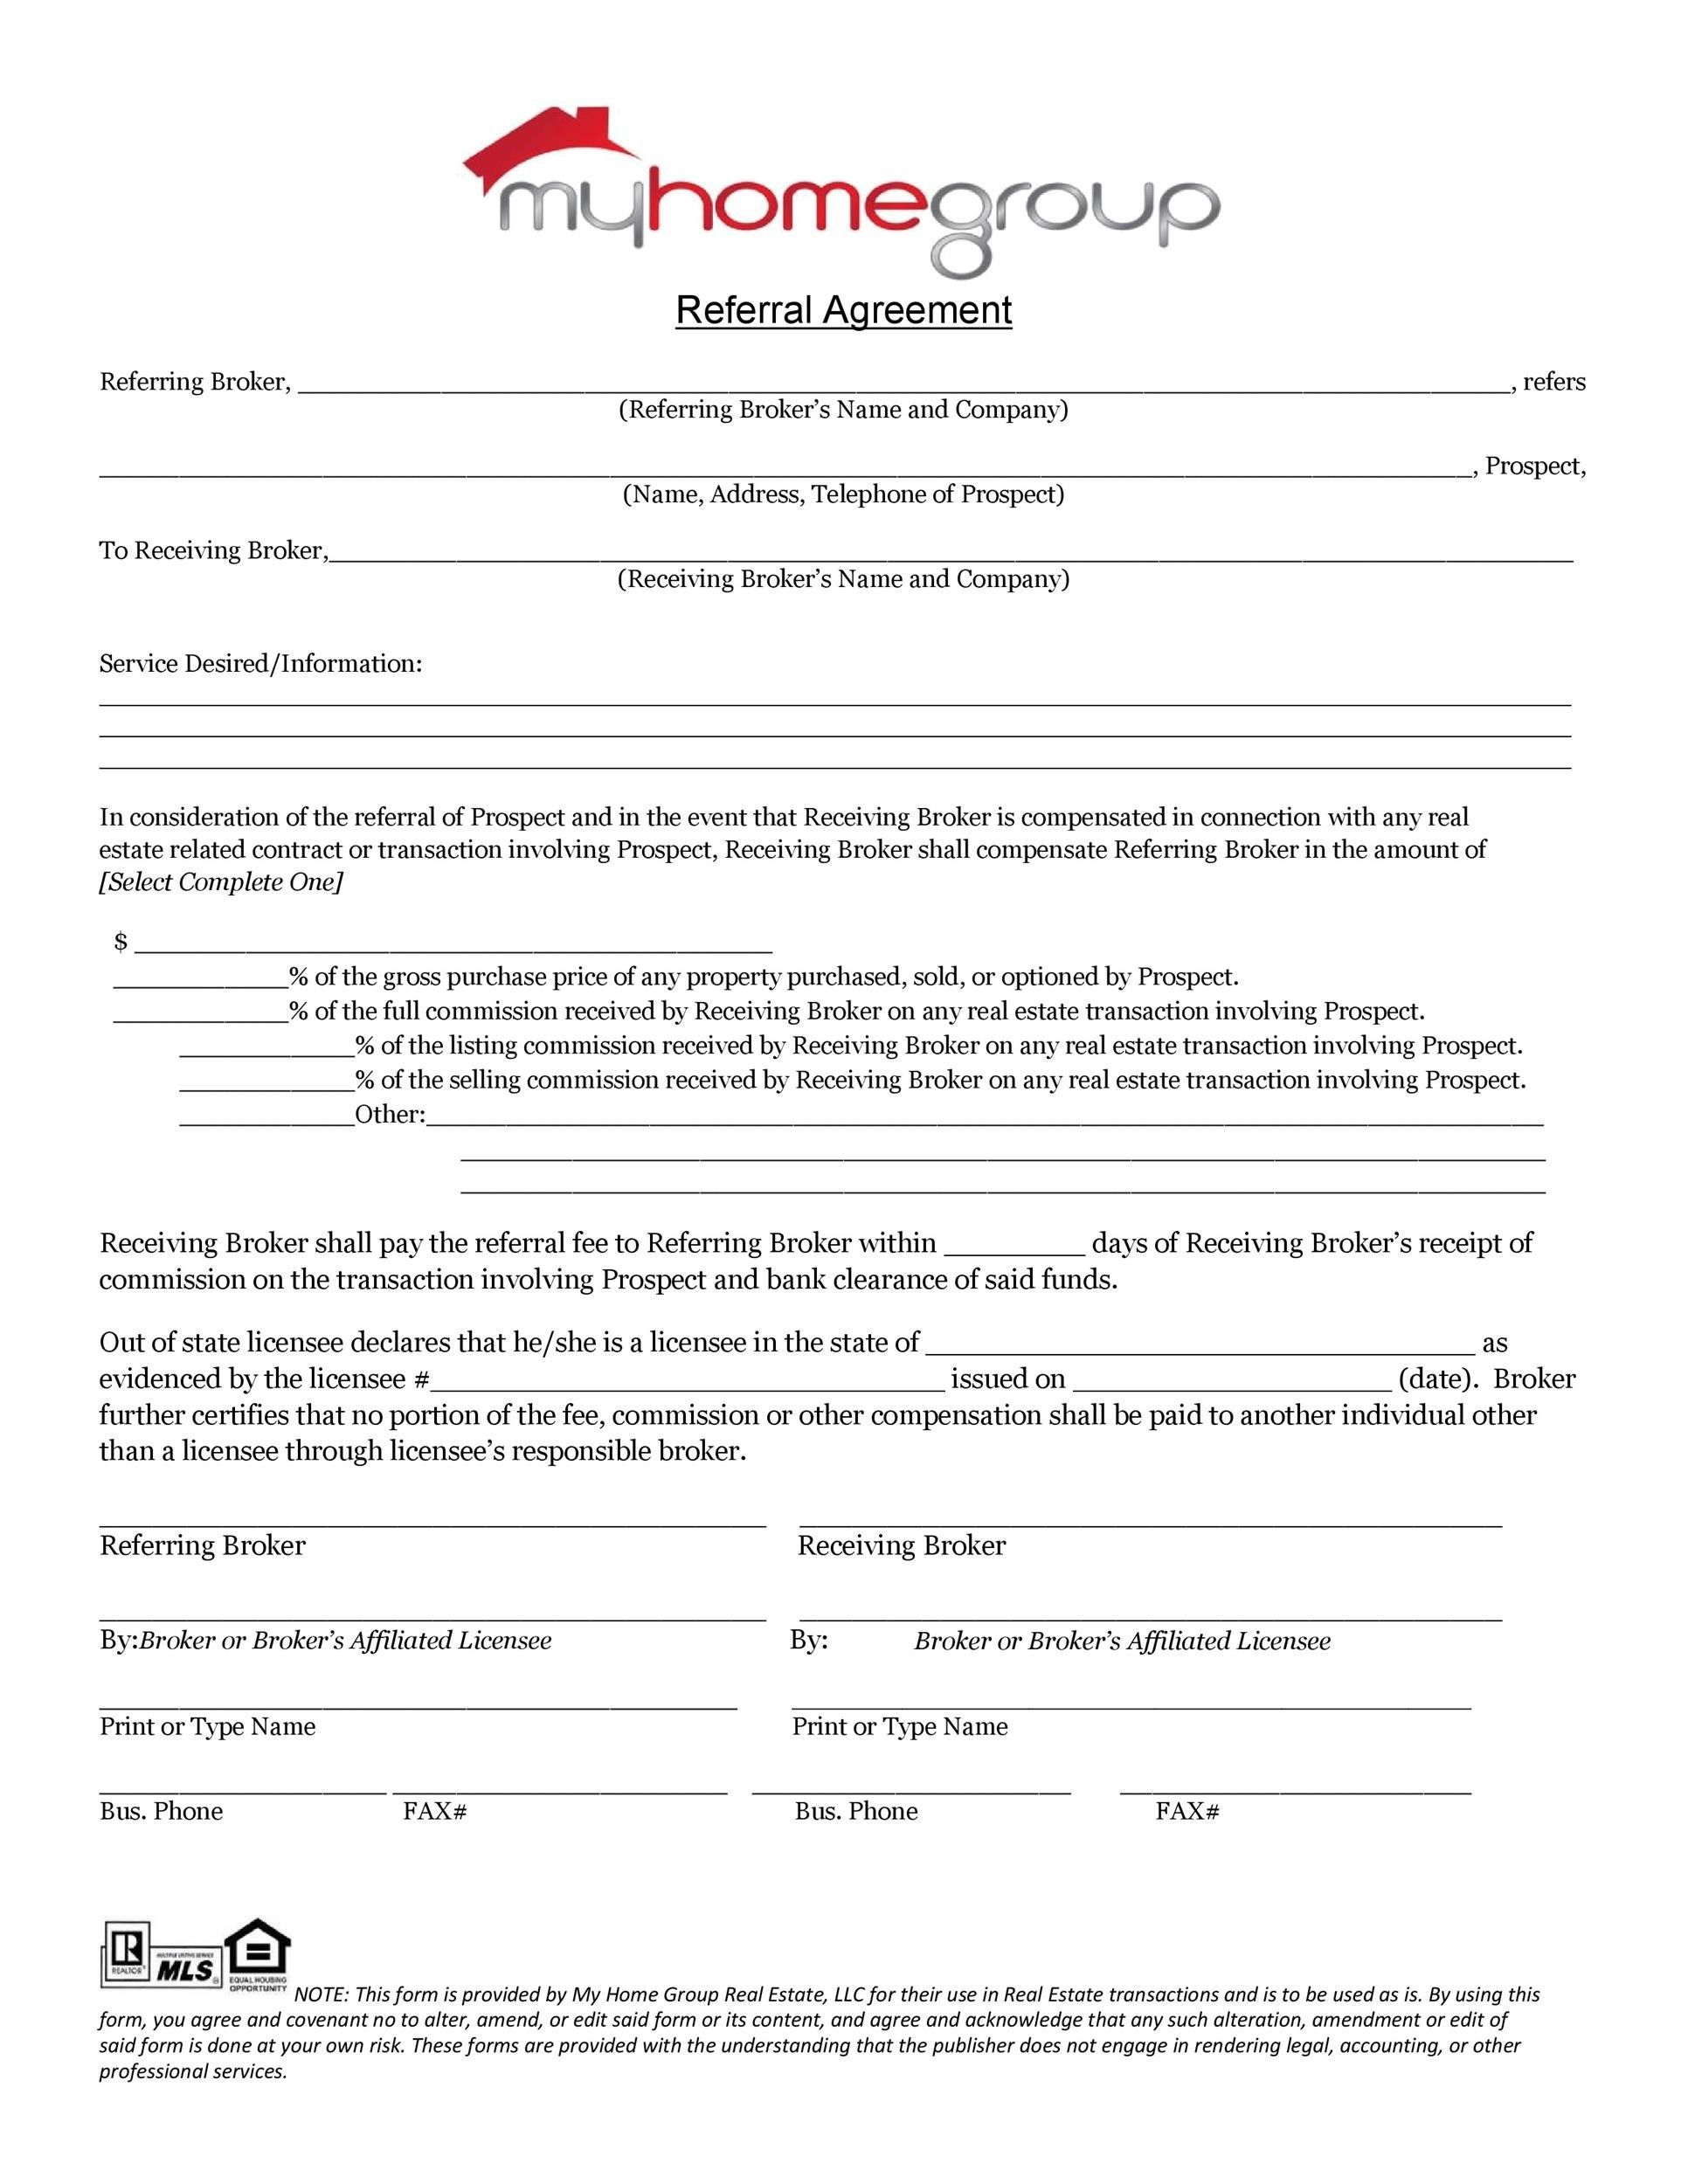 Free referral agreement template 37